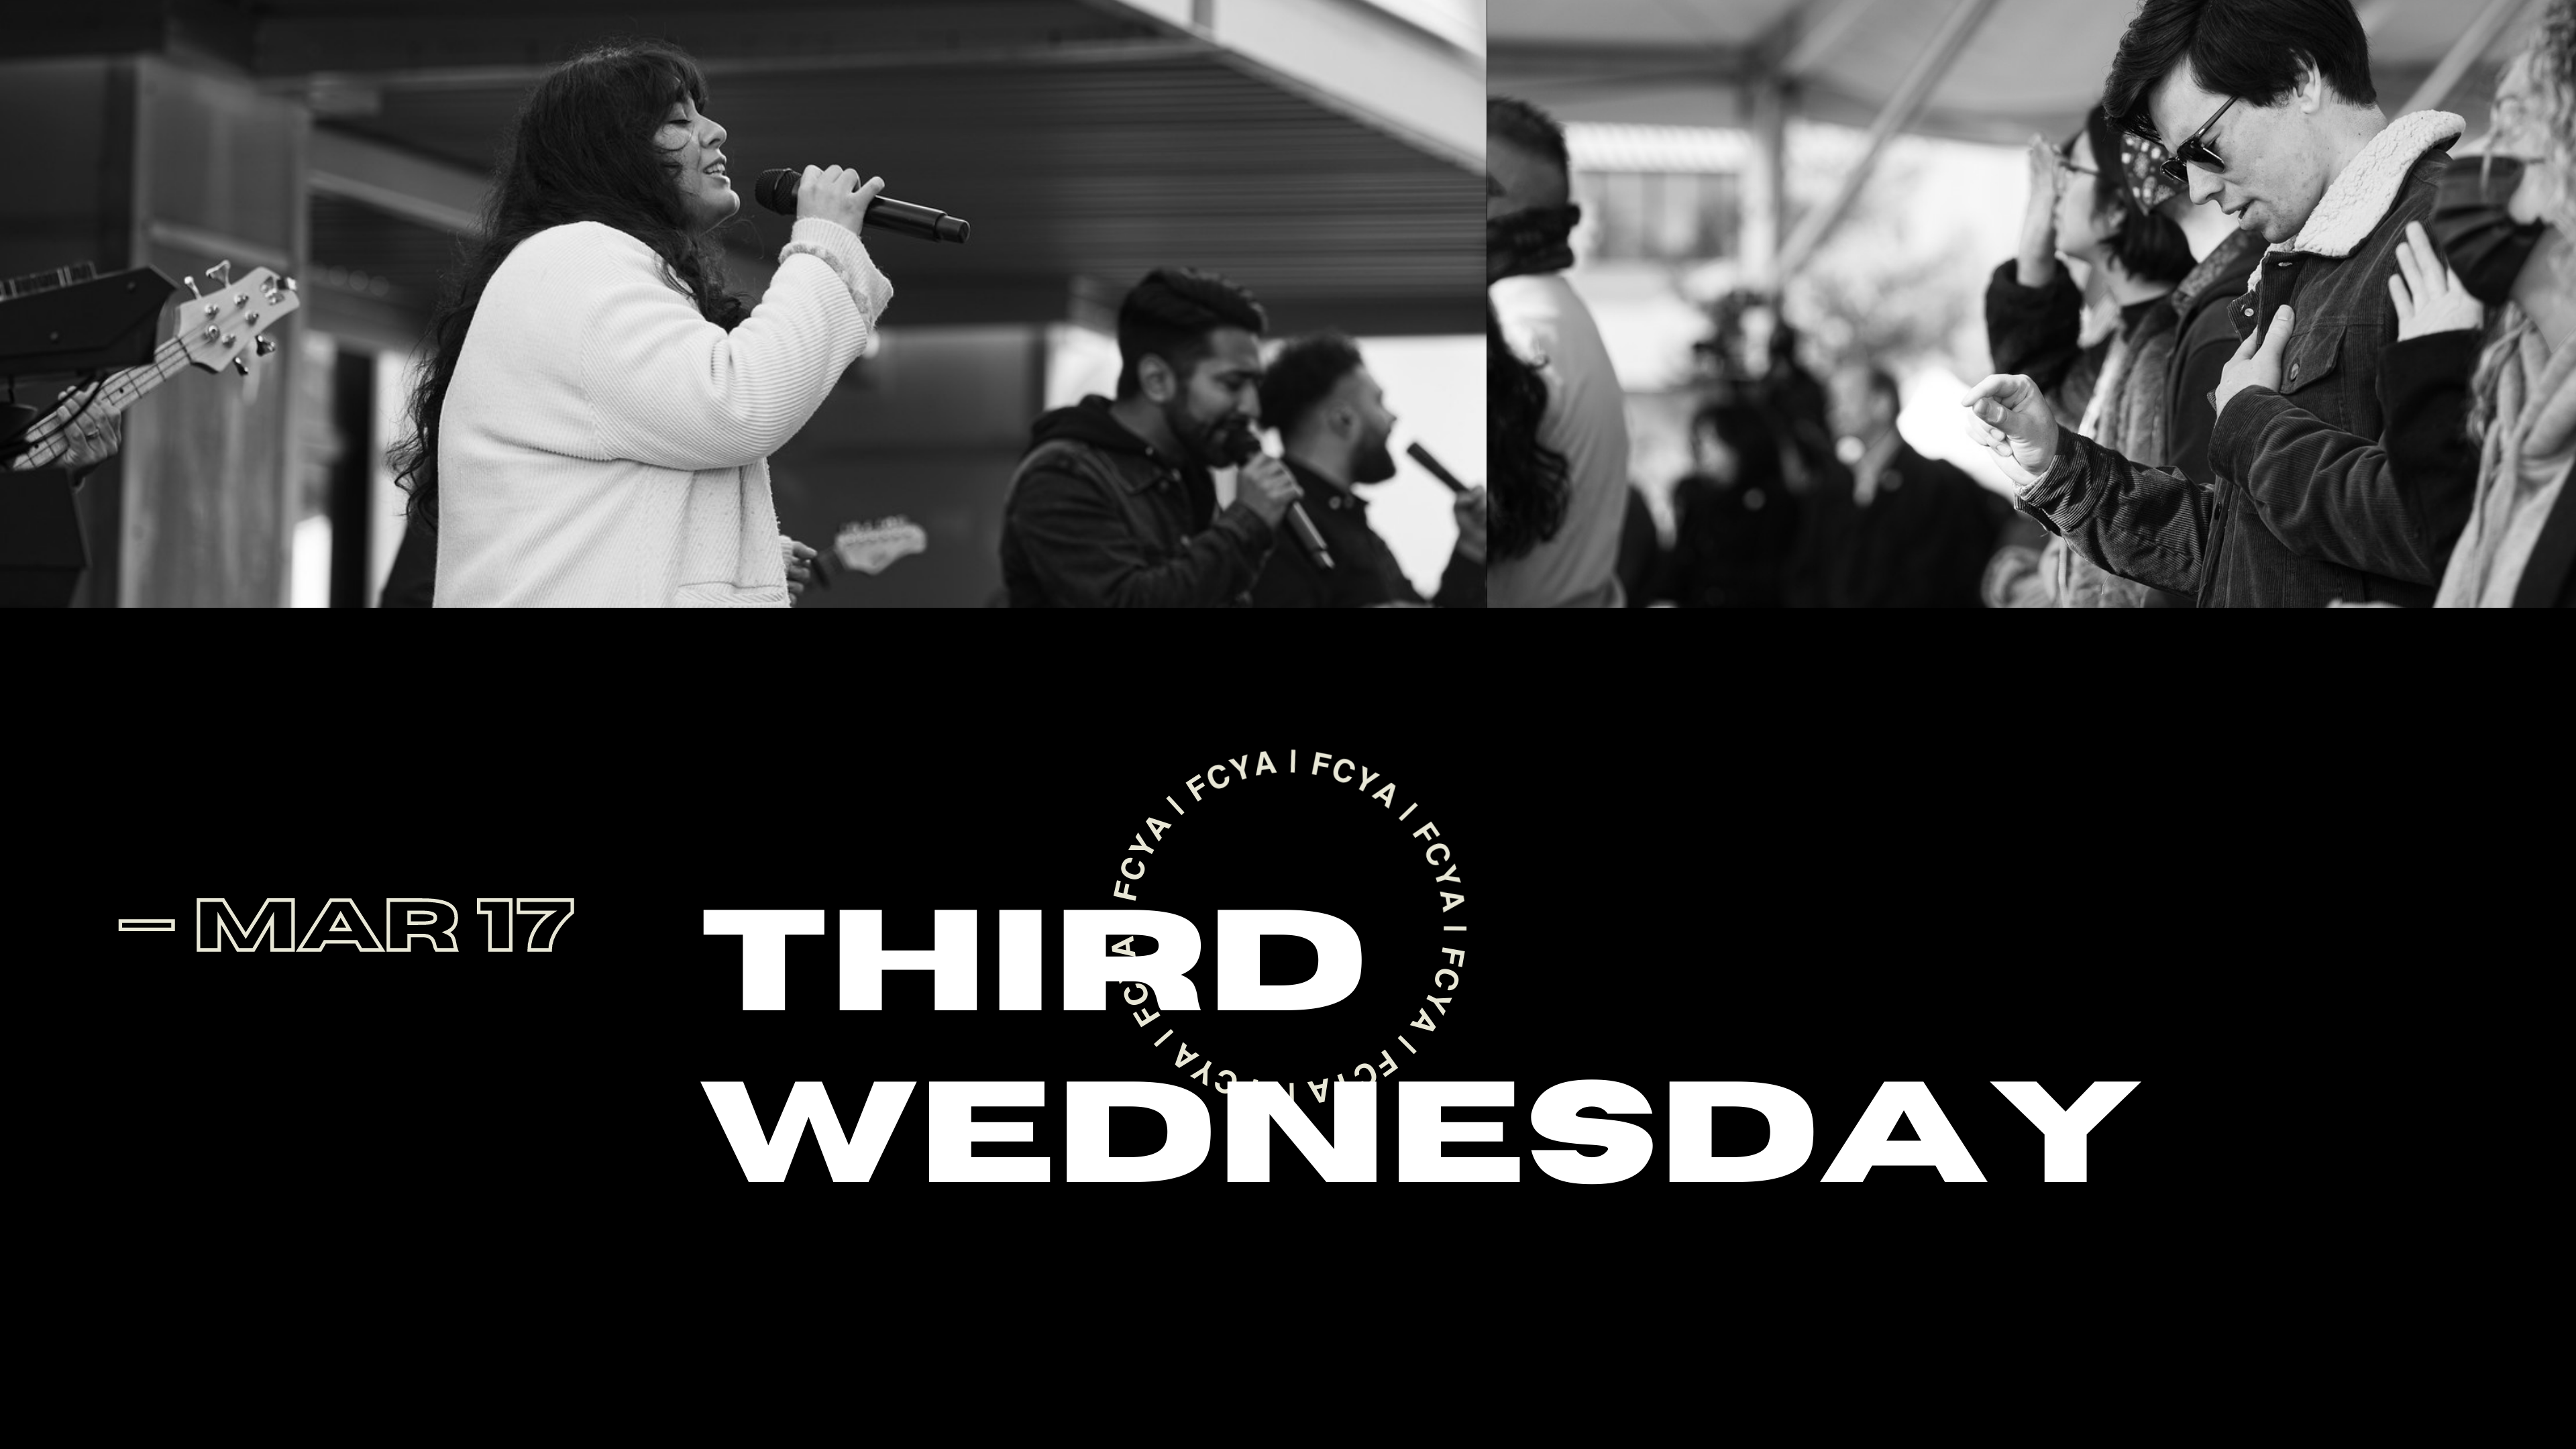 Third Wednesday at the Orange County campus